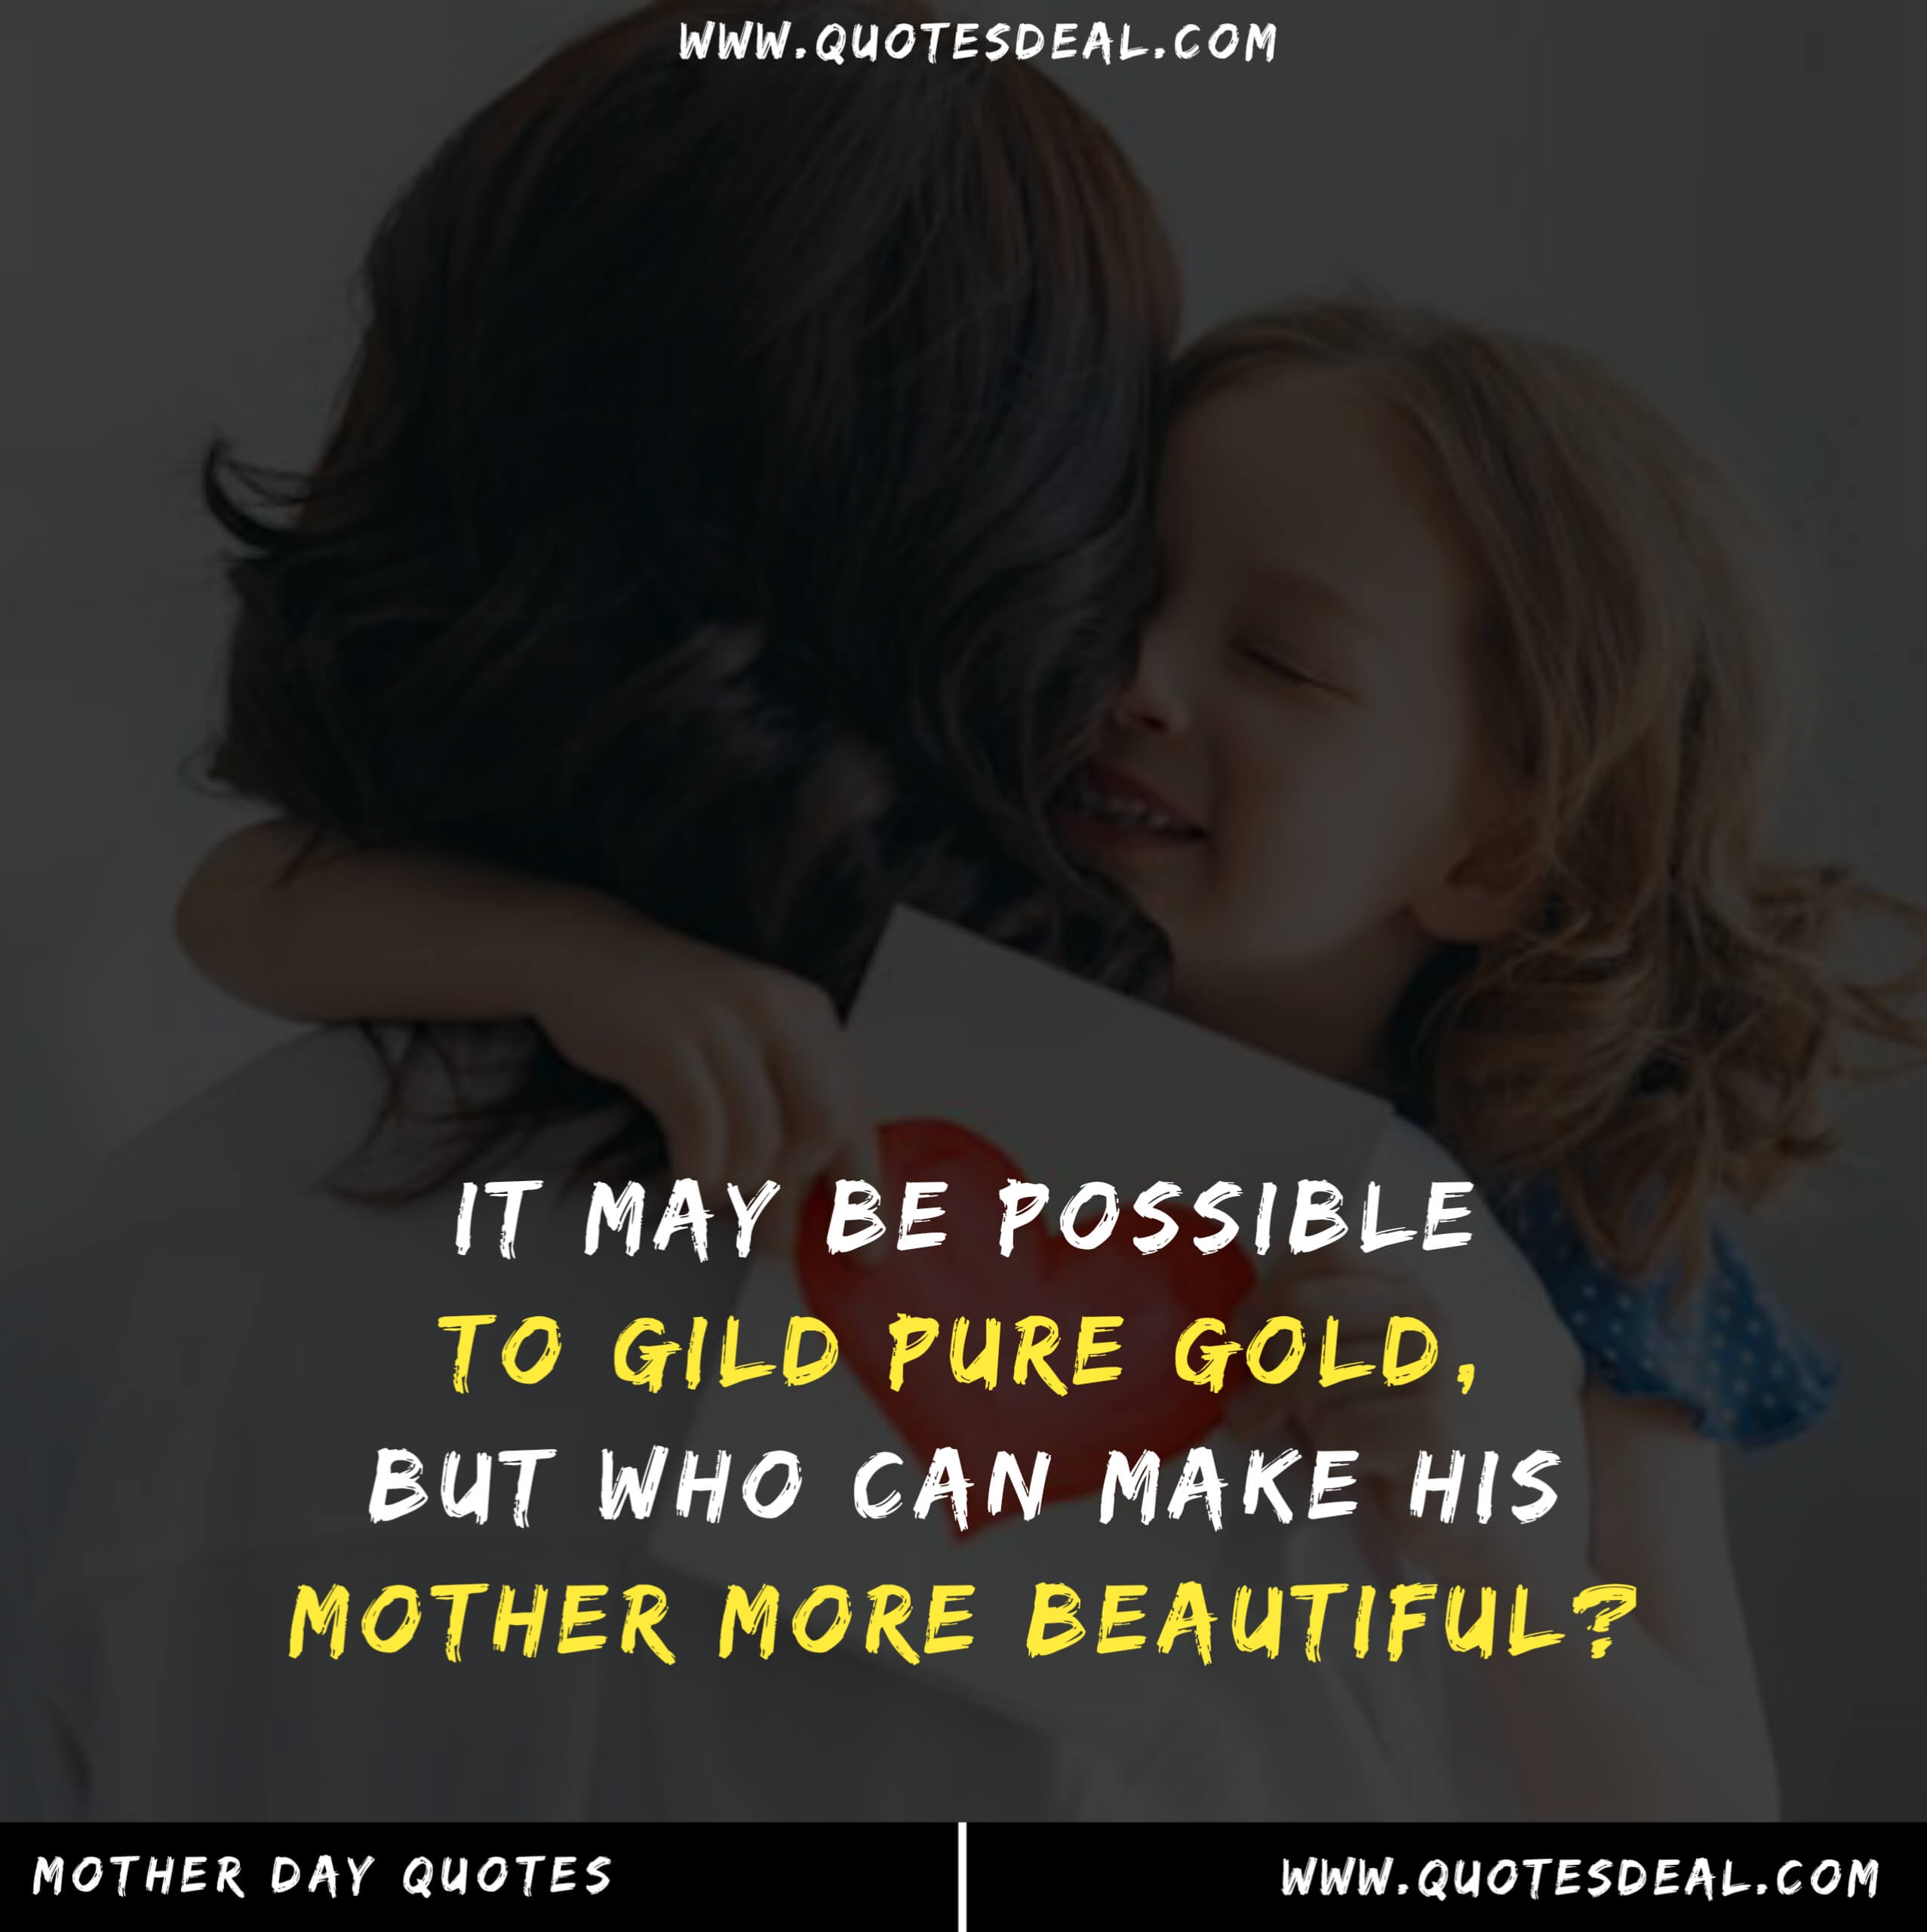 It may be possible